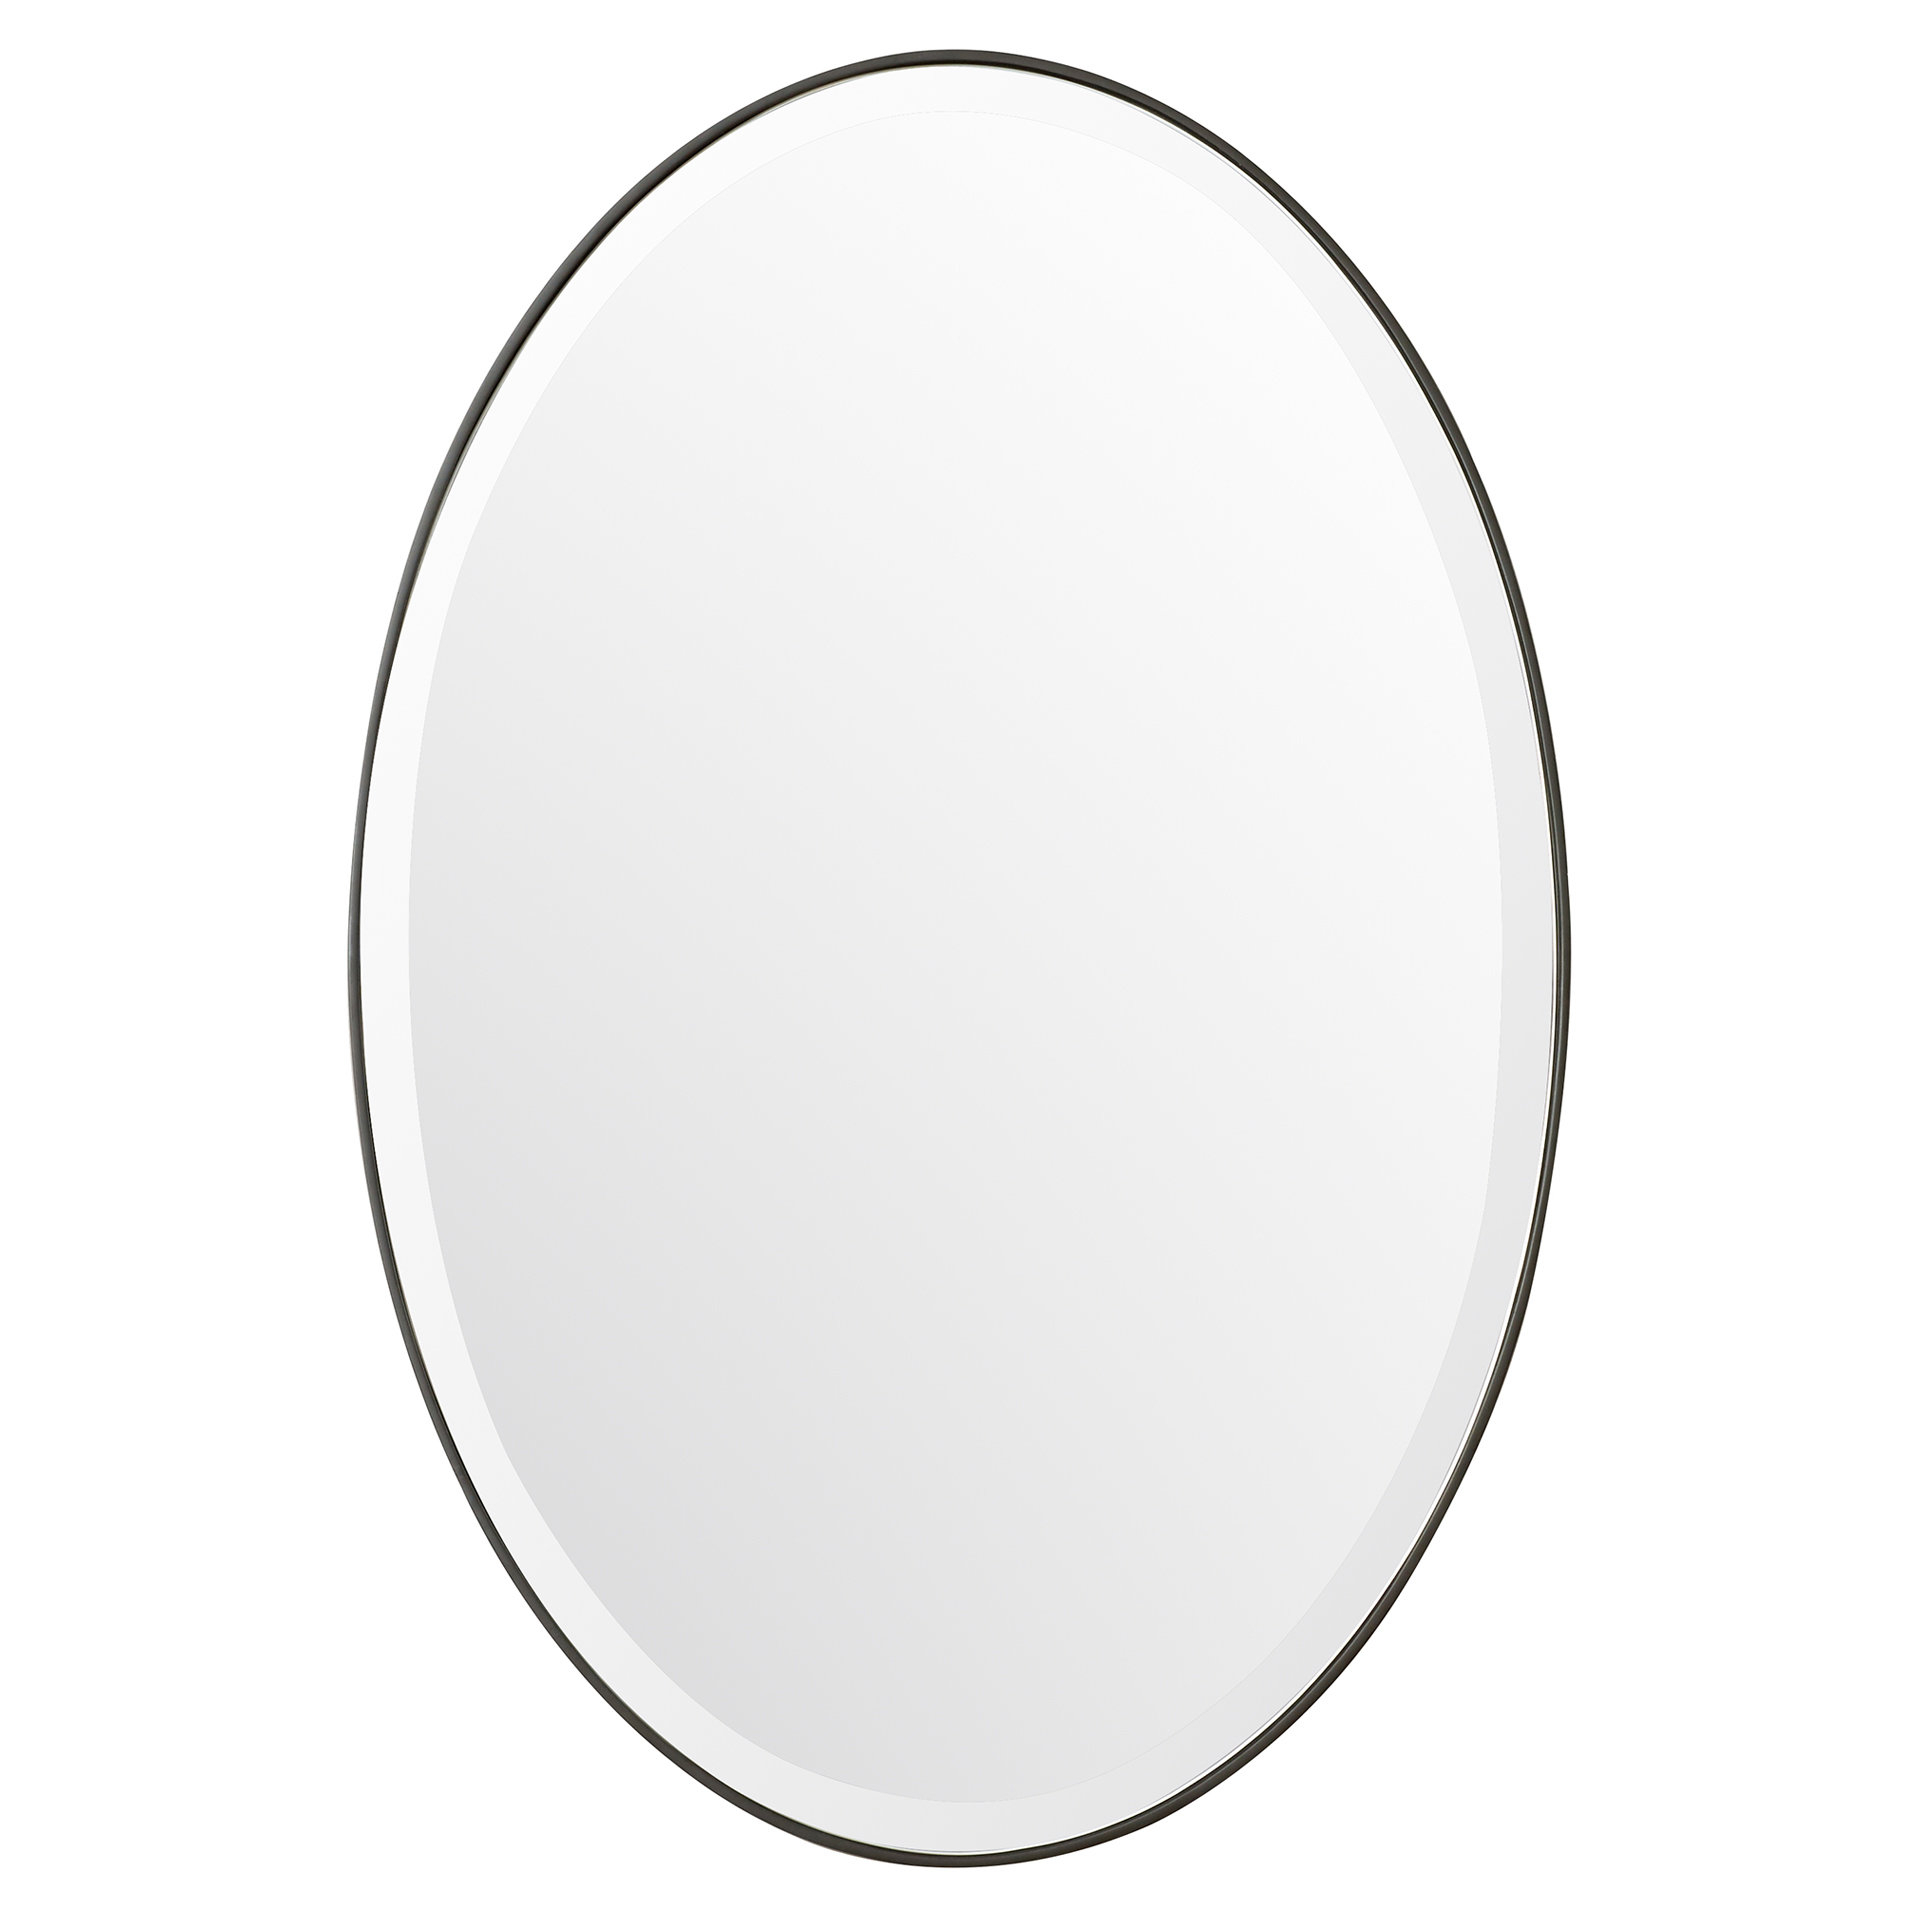 Modern & Contemporary Wall & Accent Mirrors | Joss & Main Throughout Needville Modern & Contemporary Accent Mirrors (Image 10 of 20)